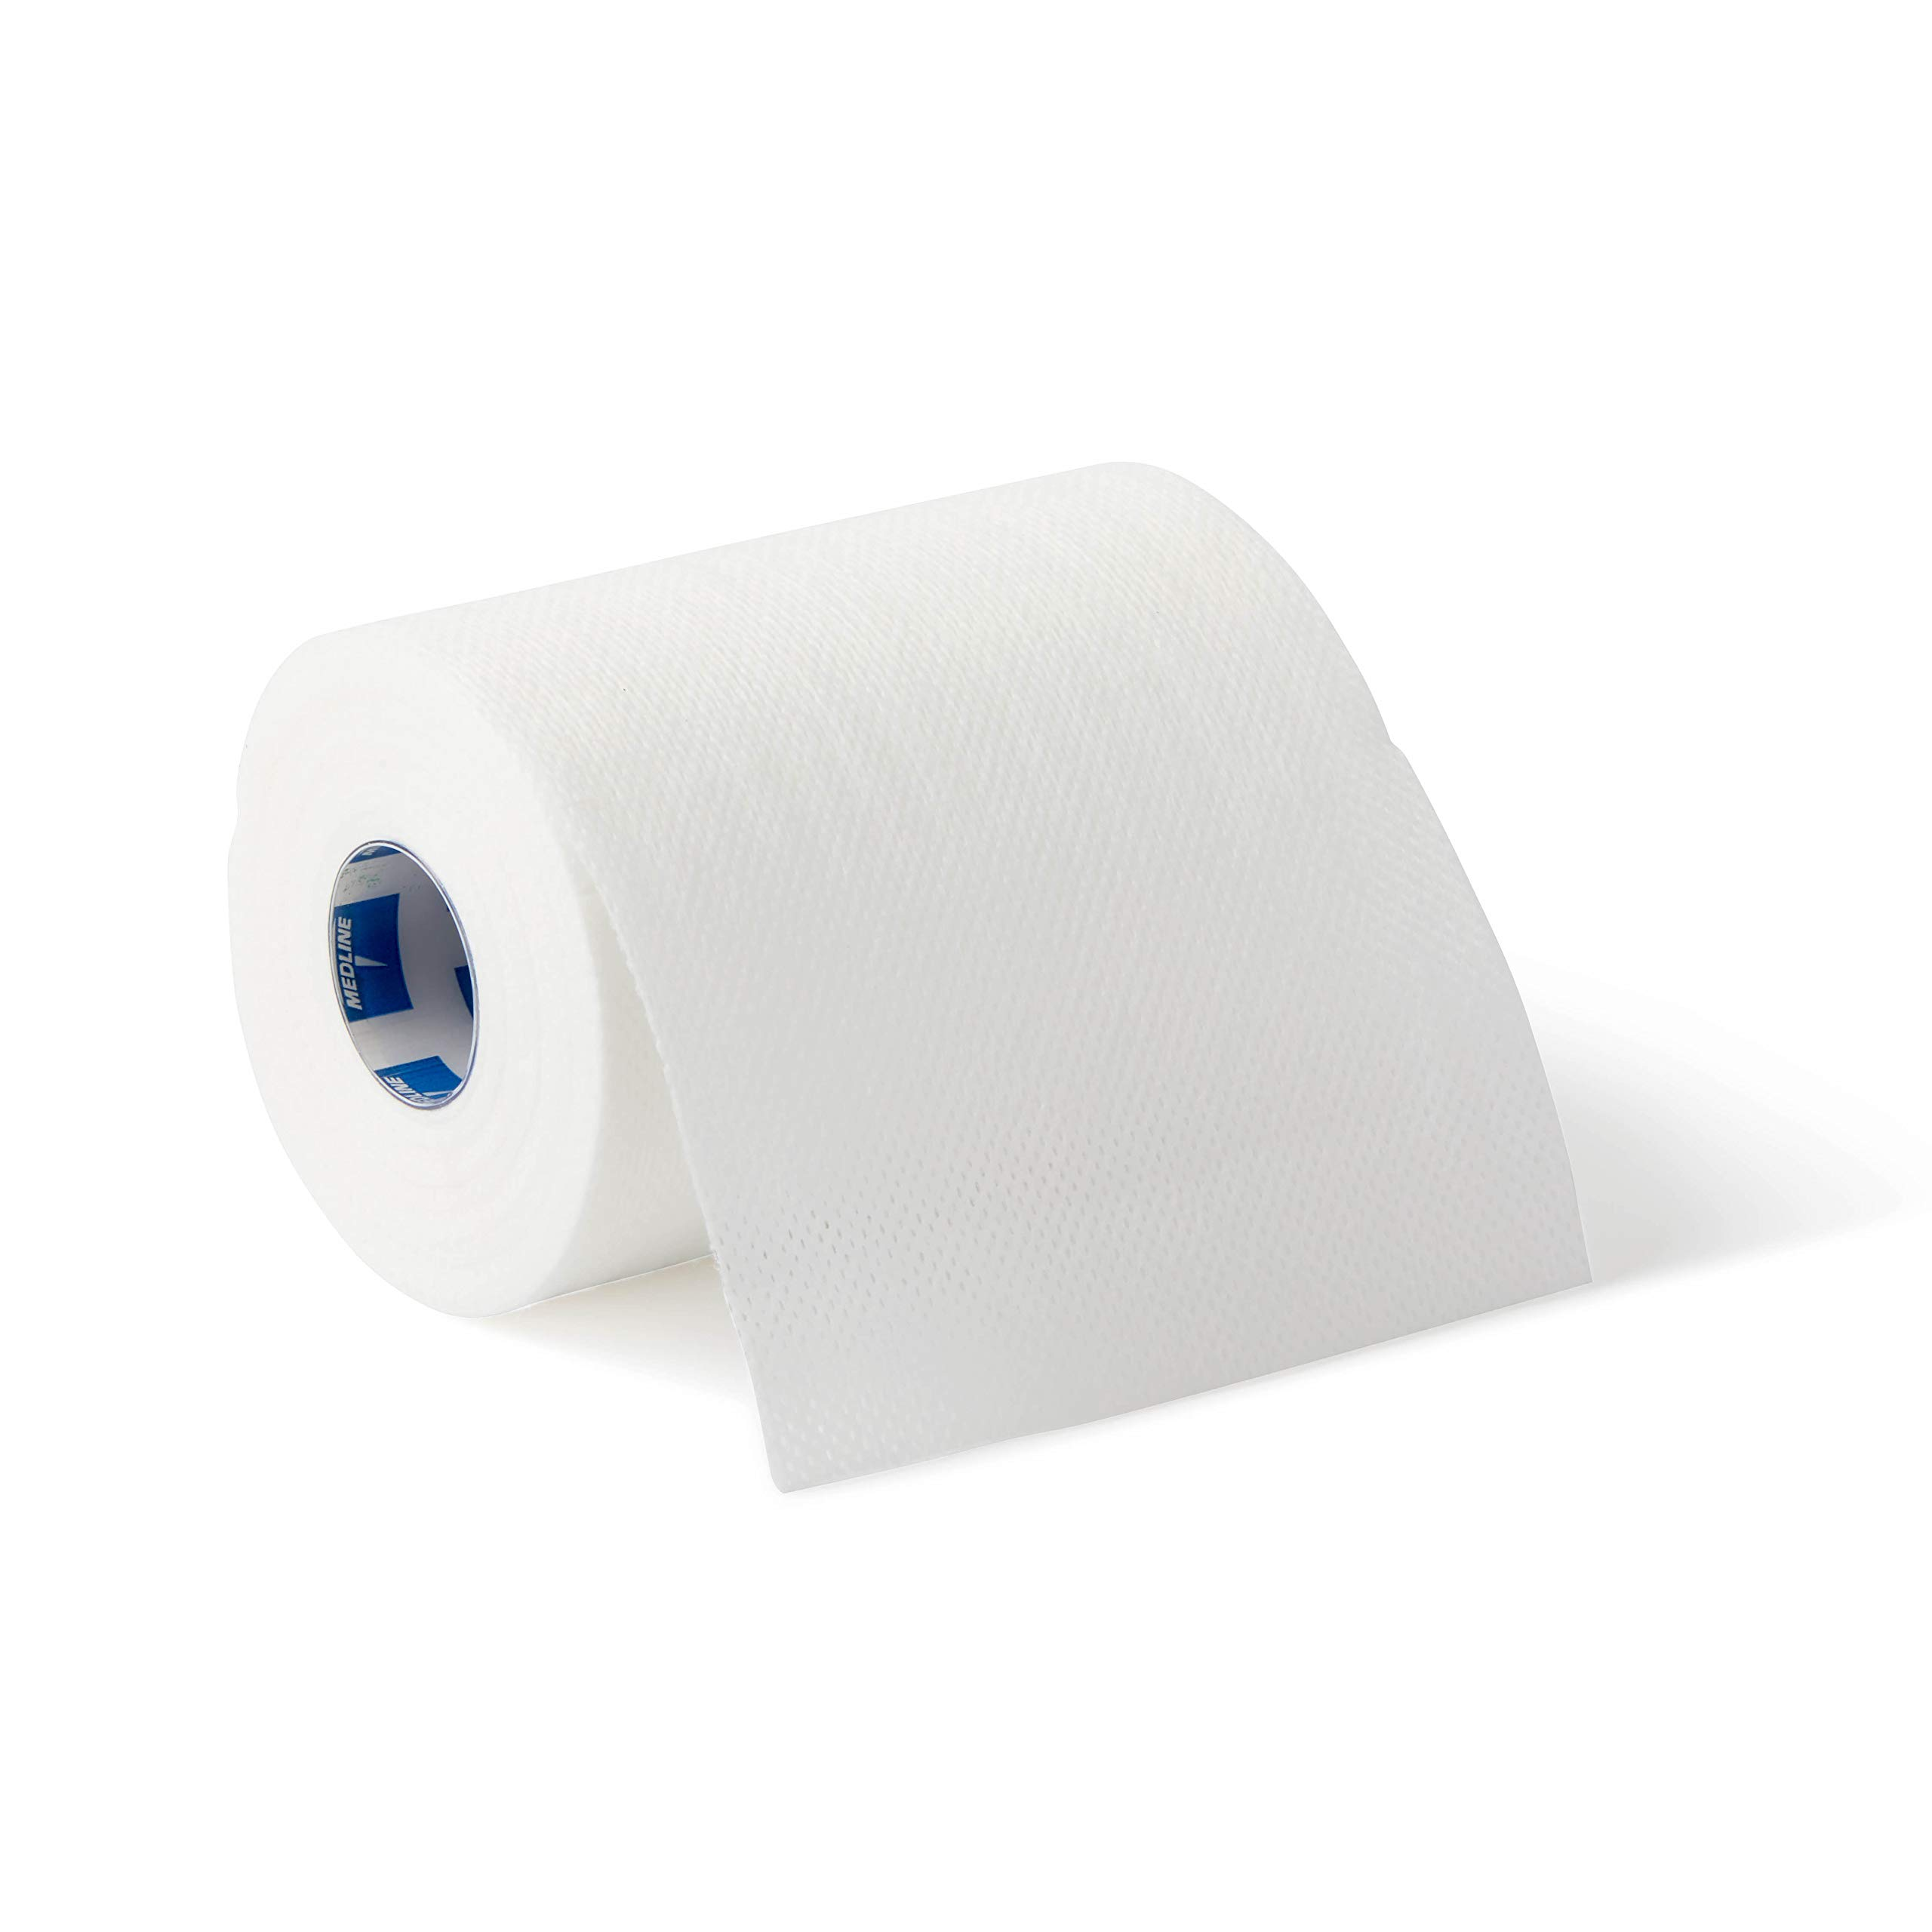 Medline MedFix EZ Dressing Retention Tape, Perforated for Easy Tearing, Secures Primary Dressings and Medical Appliances (Available in 2, 4 or 6 inch Widths) by Medline